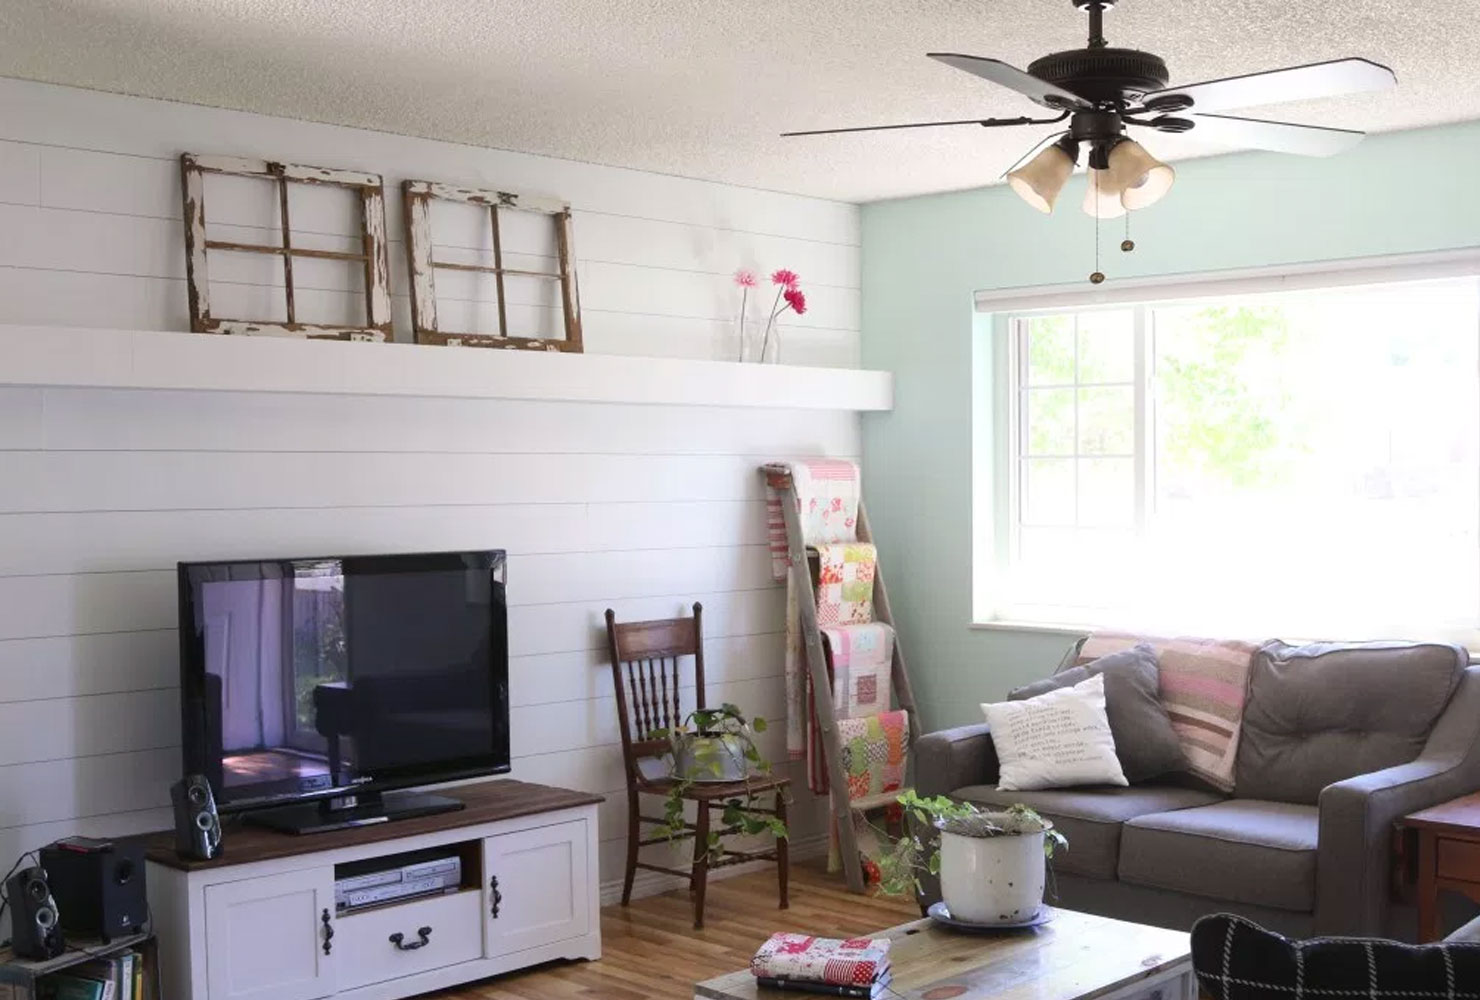 decoration ideas for living room table decor 40 farmhouse and rustic home shutterfly plank wall covers a